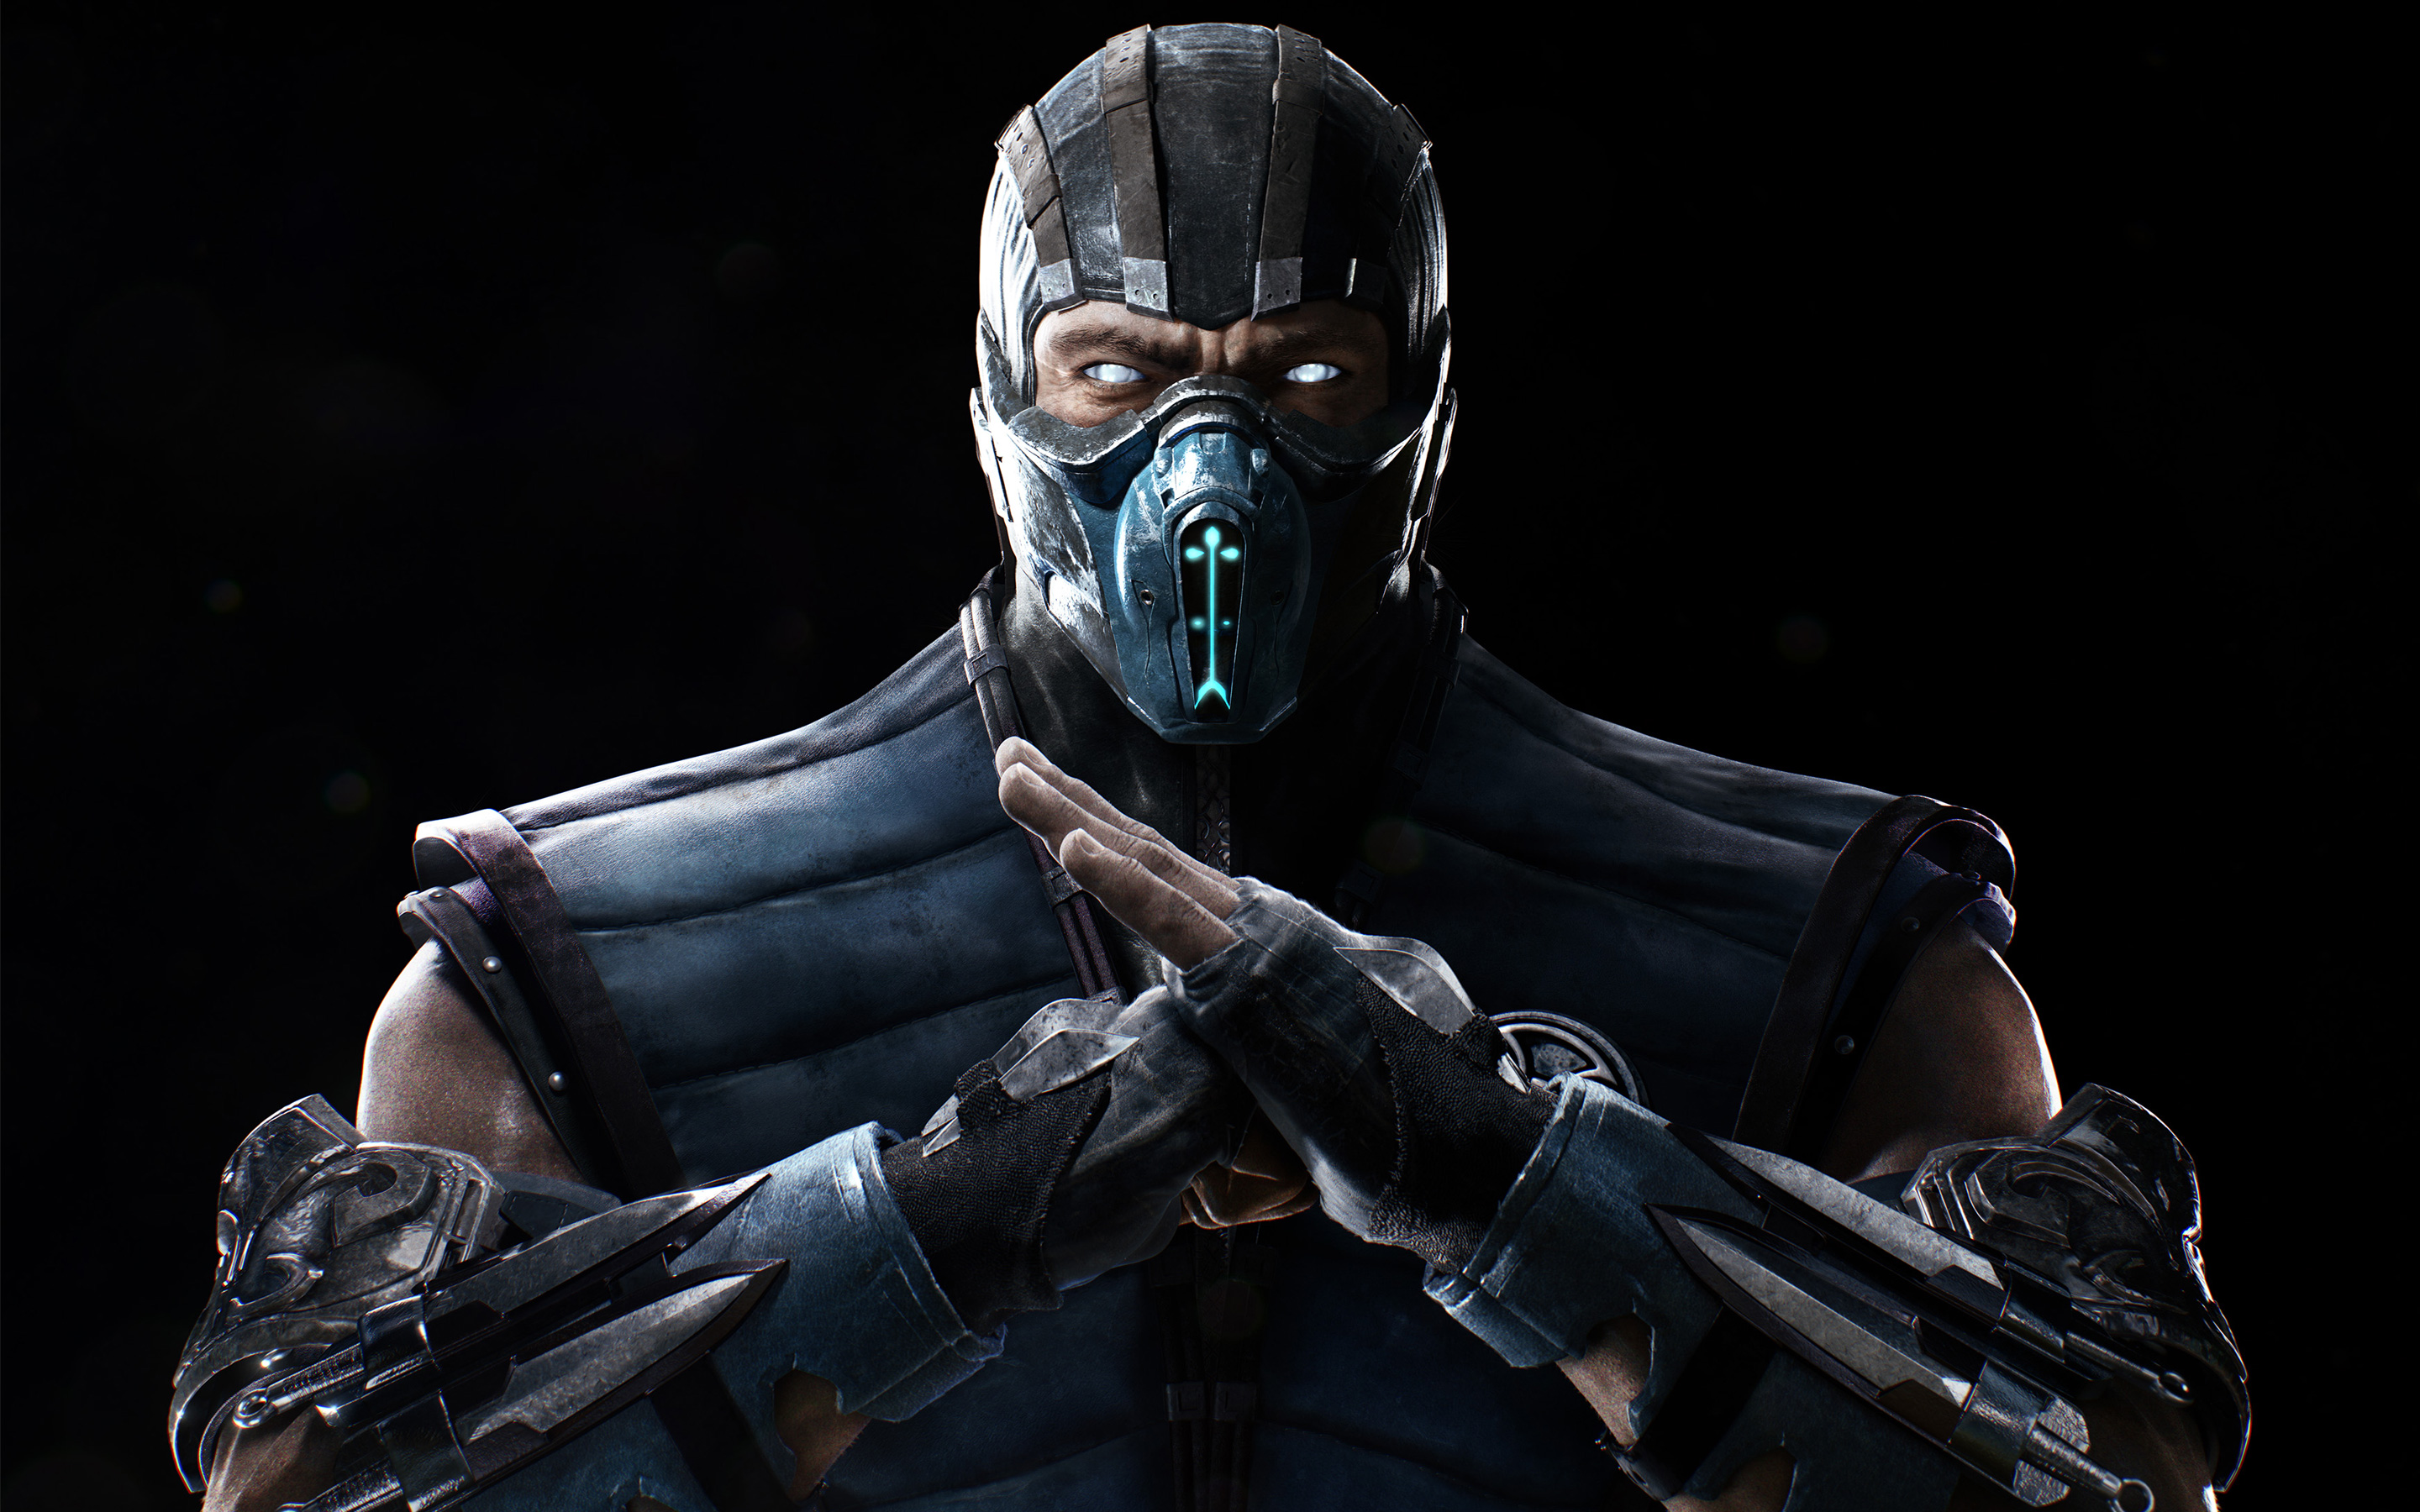 Mortal Kombat Xl Wallpaper: Kombat HD Wallpapers And Kombat Desktop Backgrounds Up To